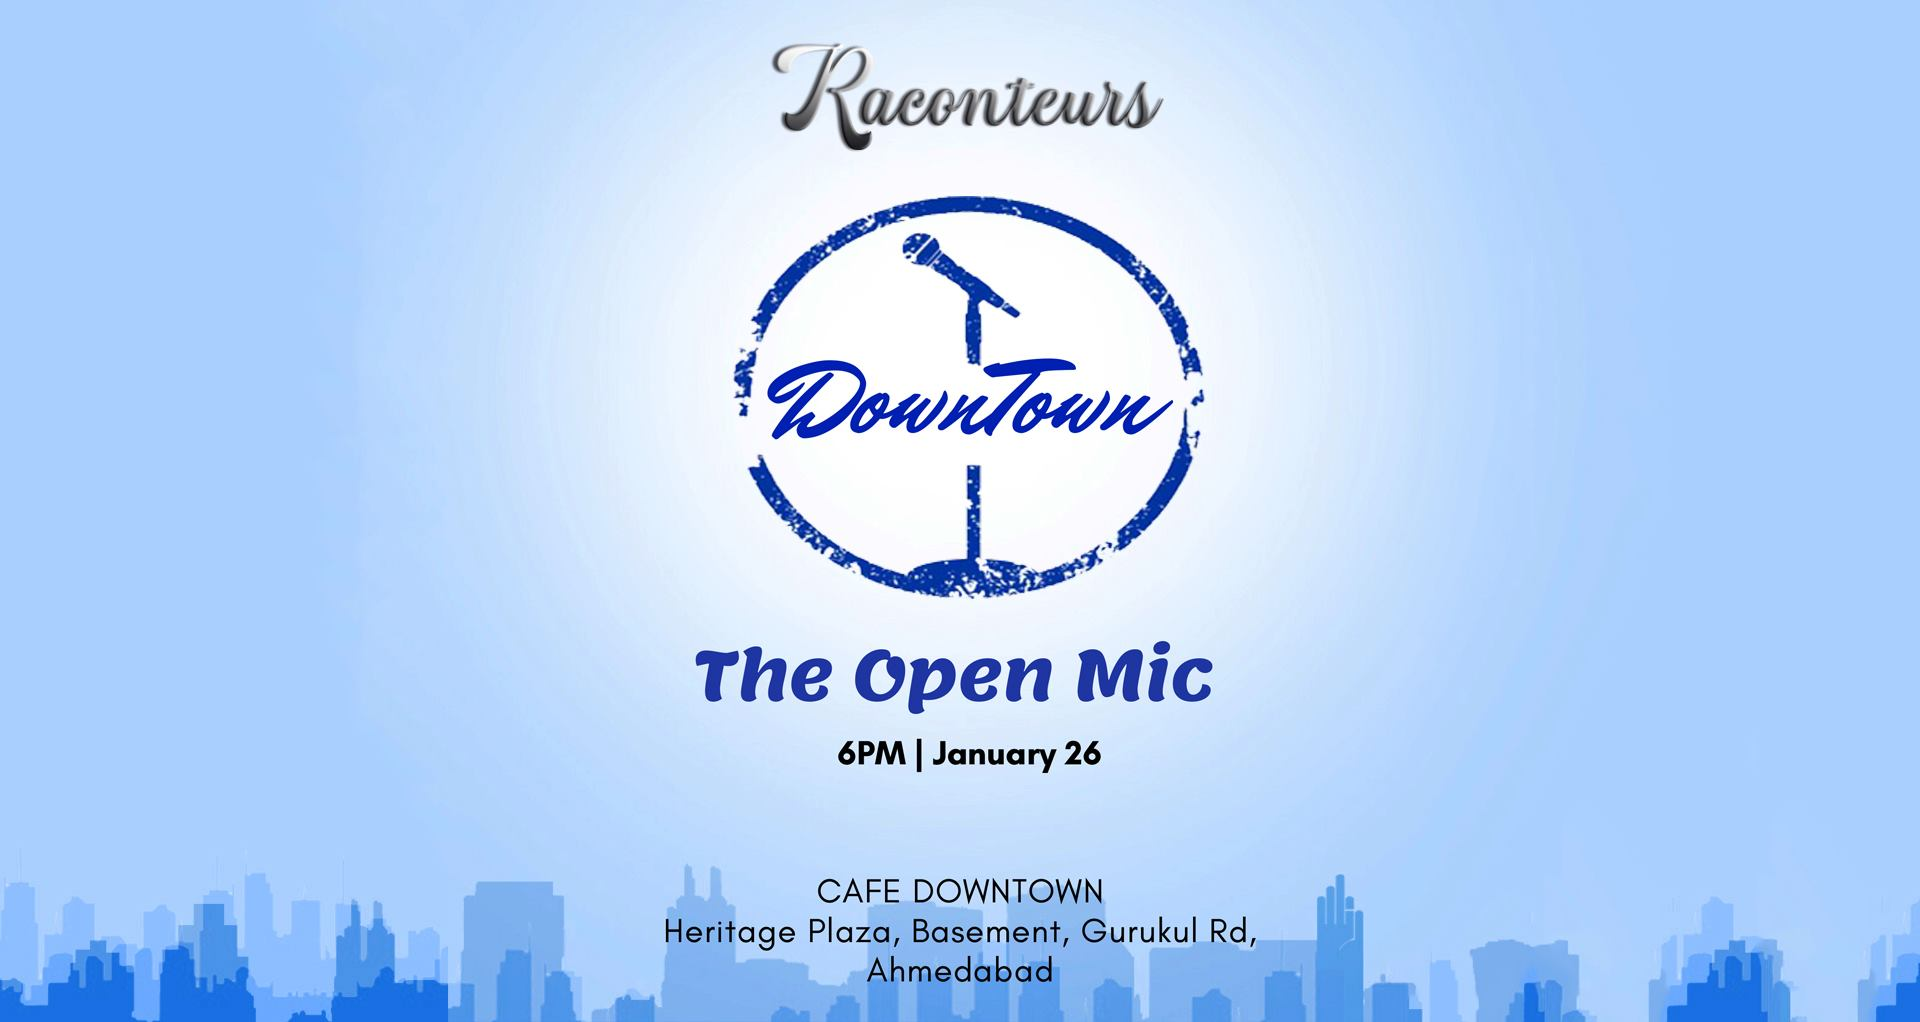 https://creativeyatra.com/wp-content/uploads/2020/01/DownTown-The-Open-Mic.jpg